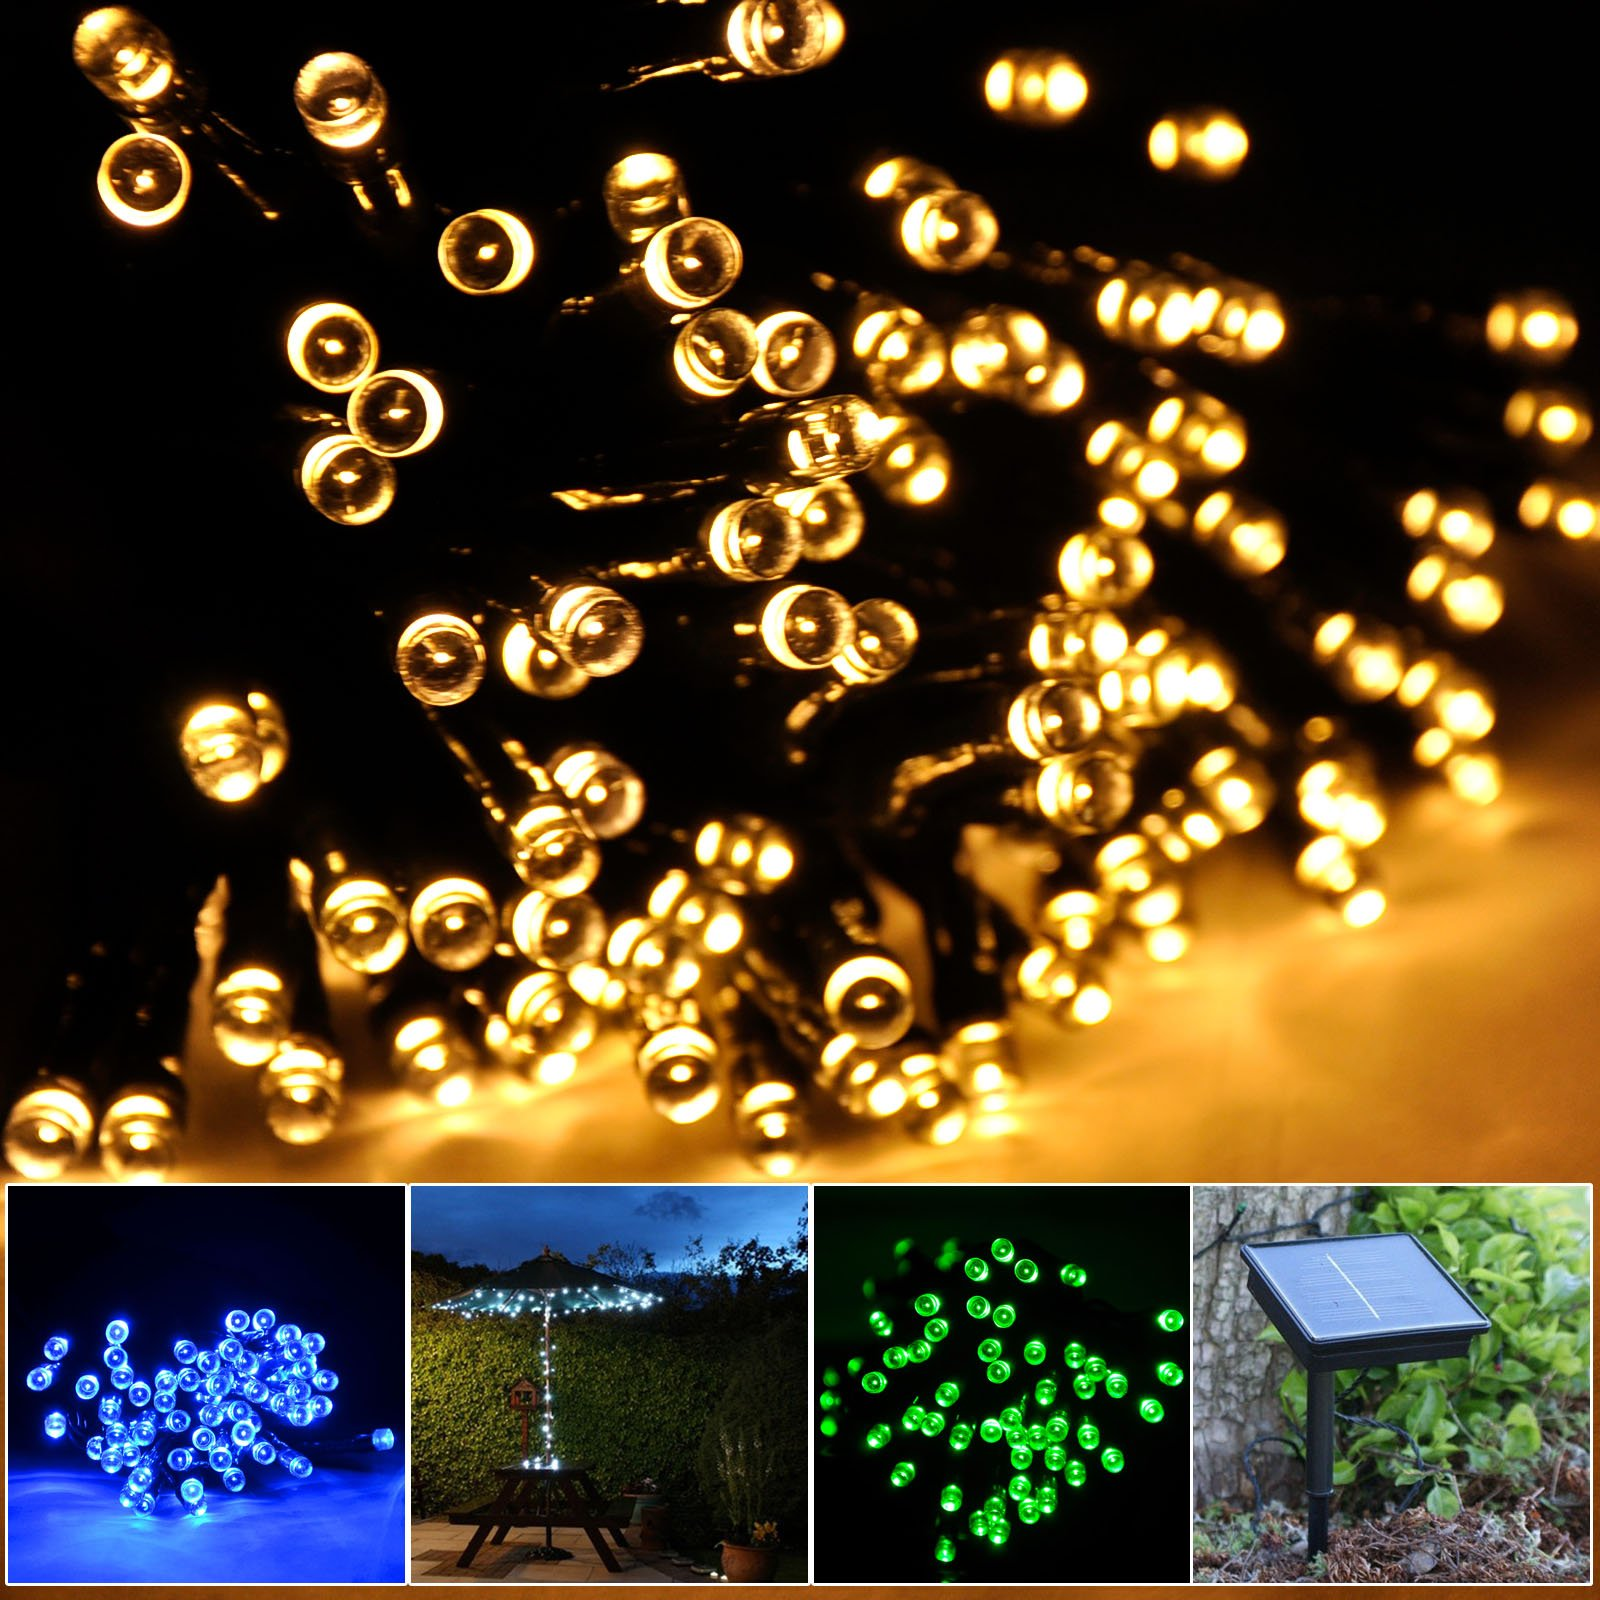 lychee Solar powered string light 55ft 17m 100 LED Solar Fairy light string Garden,Outdoor,Home,Christmas Party (17m 100Leds, Warm White) by lychee